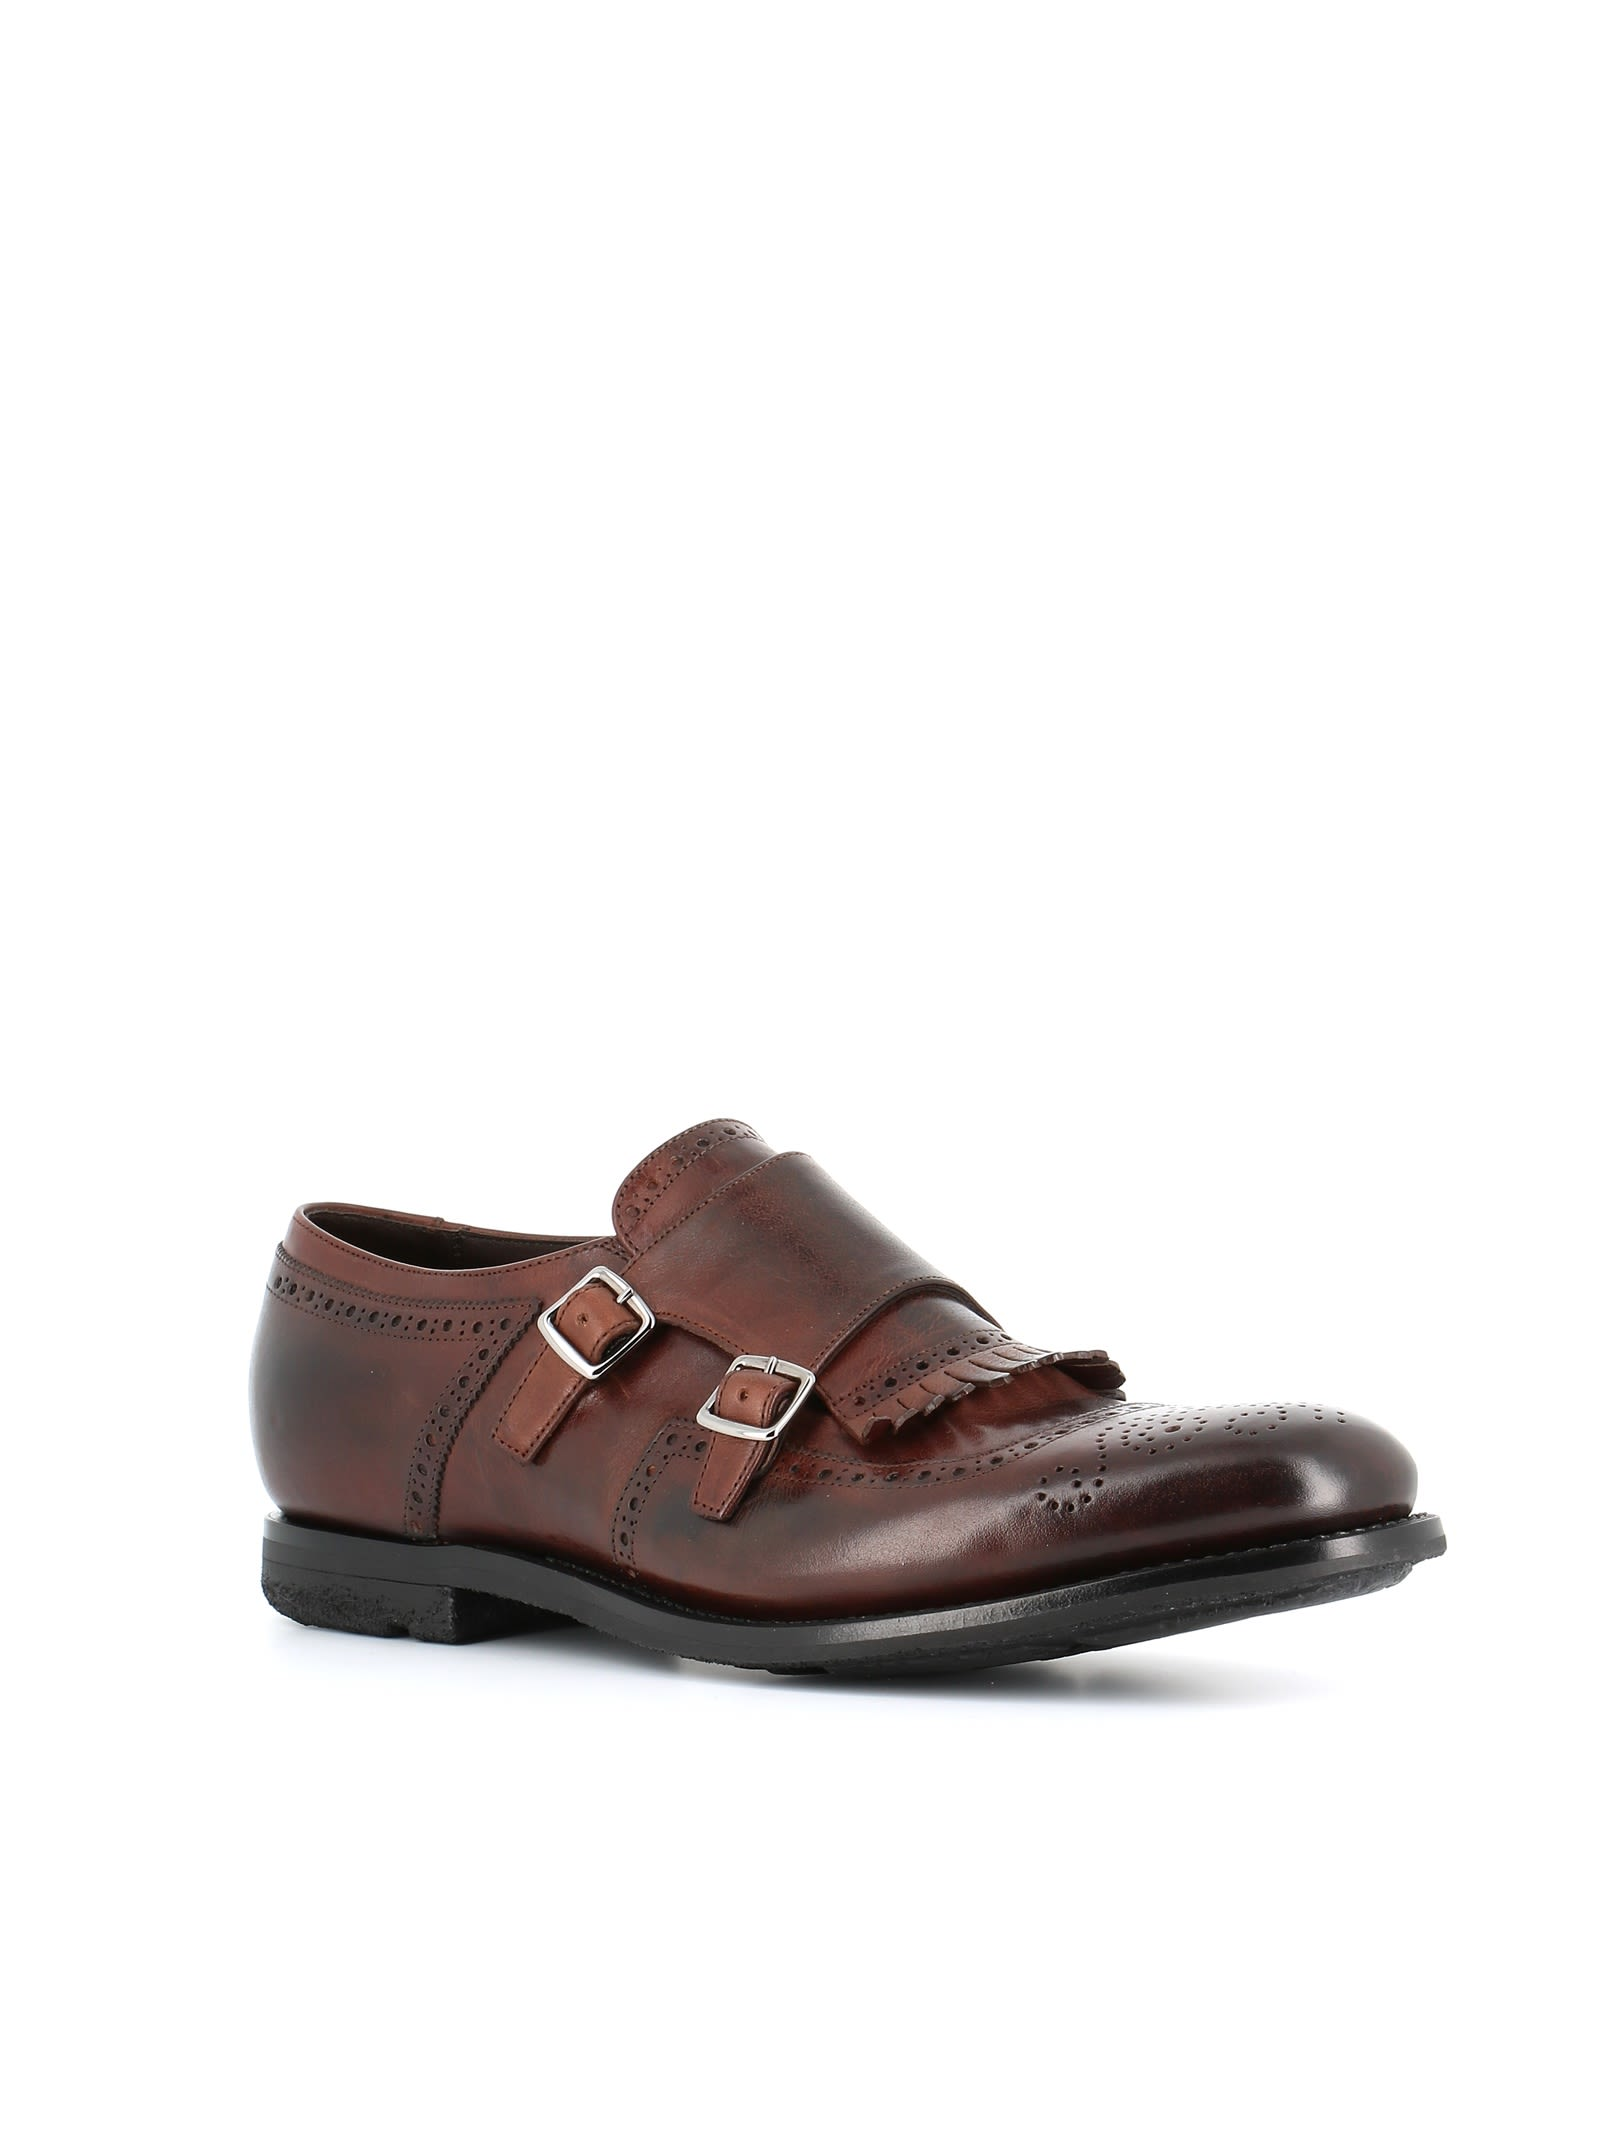 Church's Shangai 10 Double monks u9y3fW5